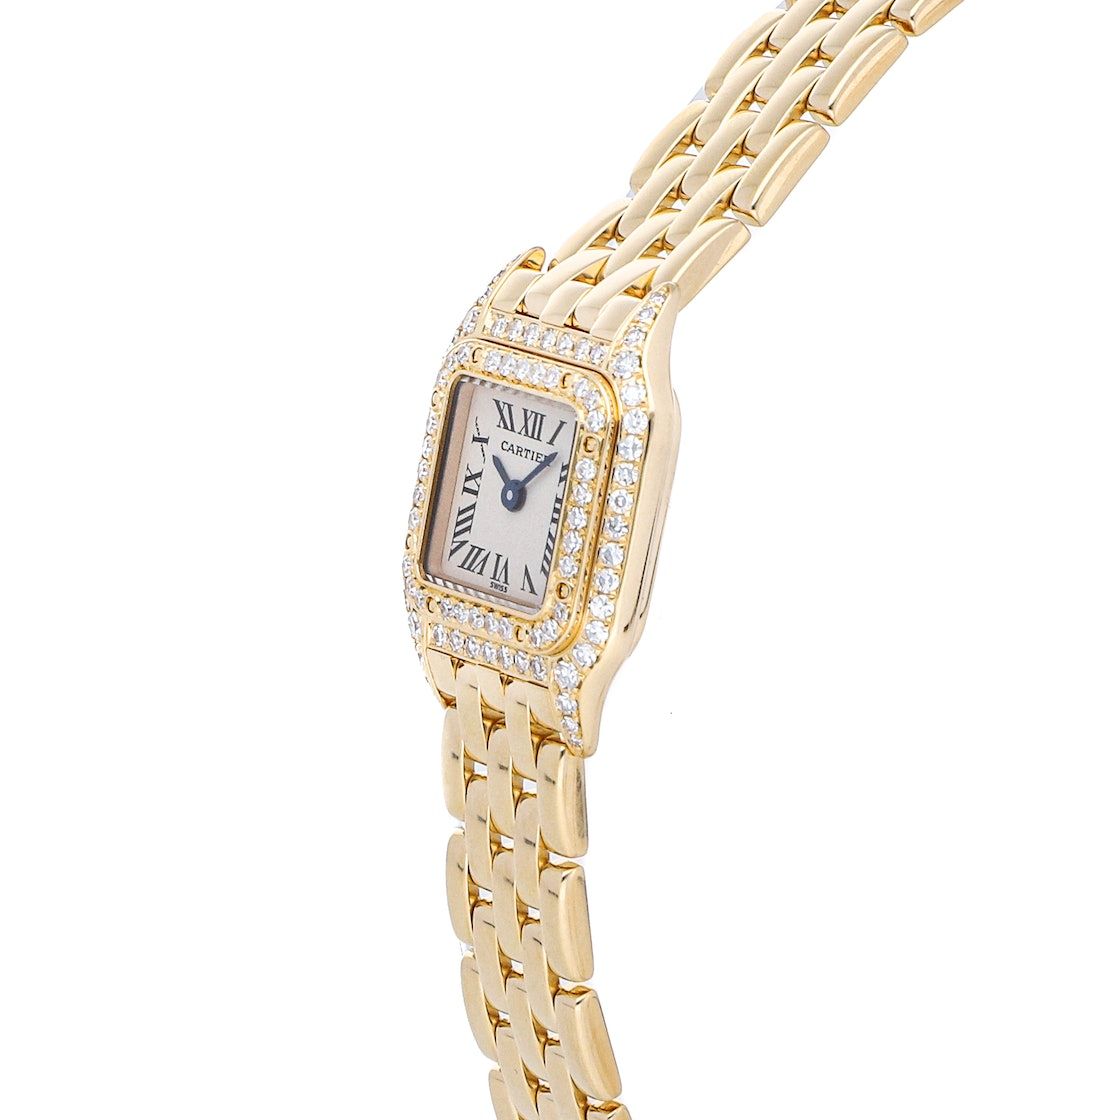 Cartier Panthere WF3141B9